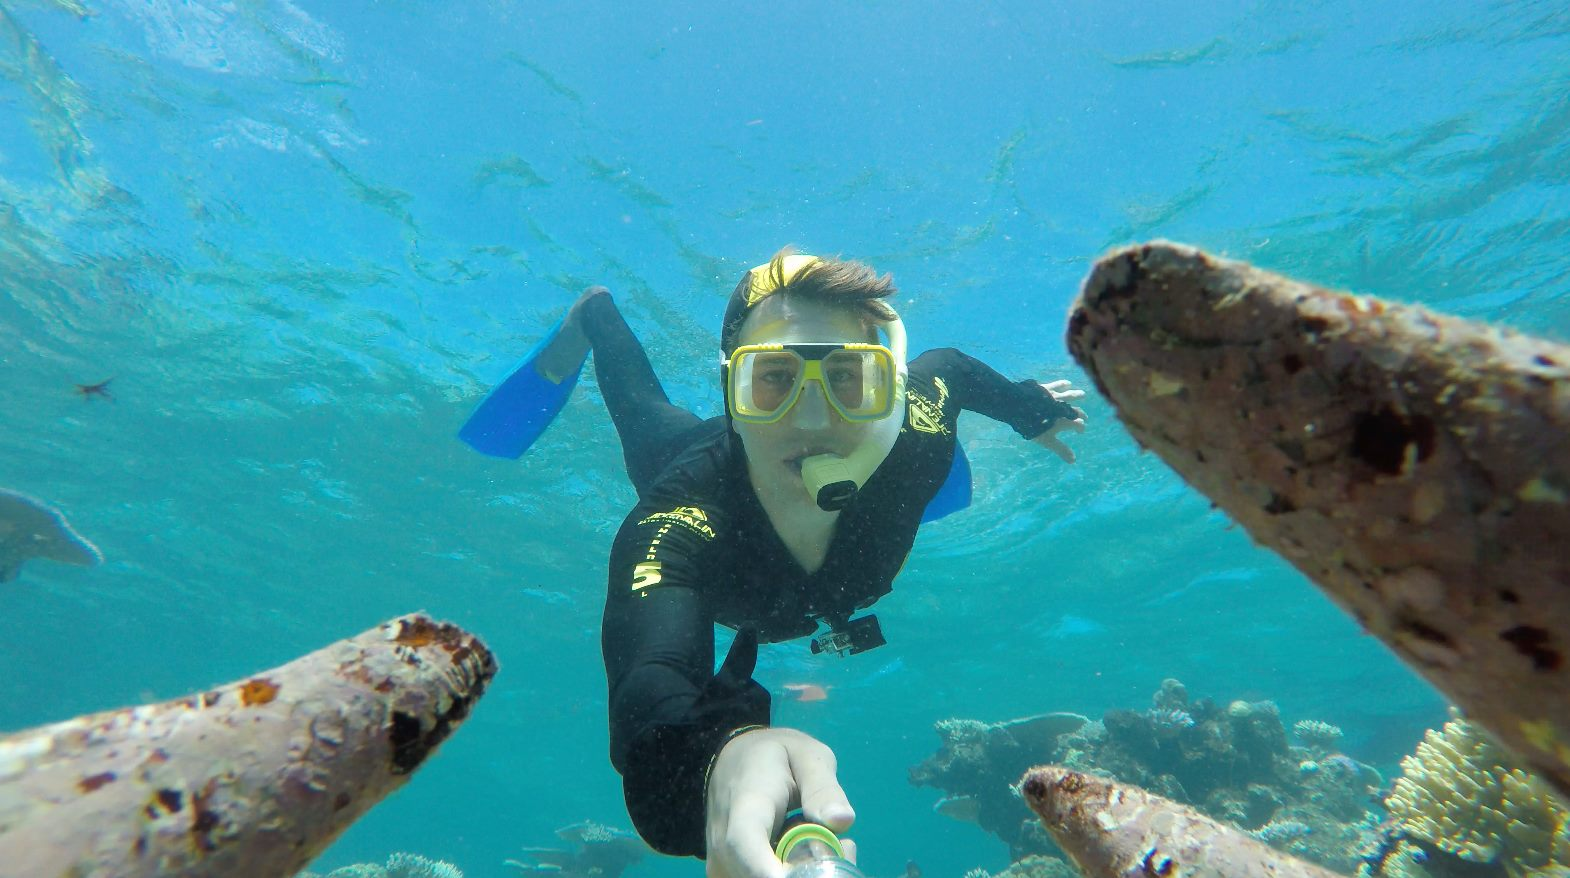 Snorkelling in the Great Barrier Reef by Michael Kaplan